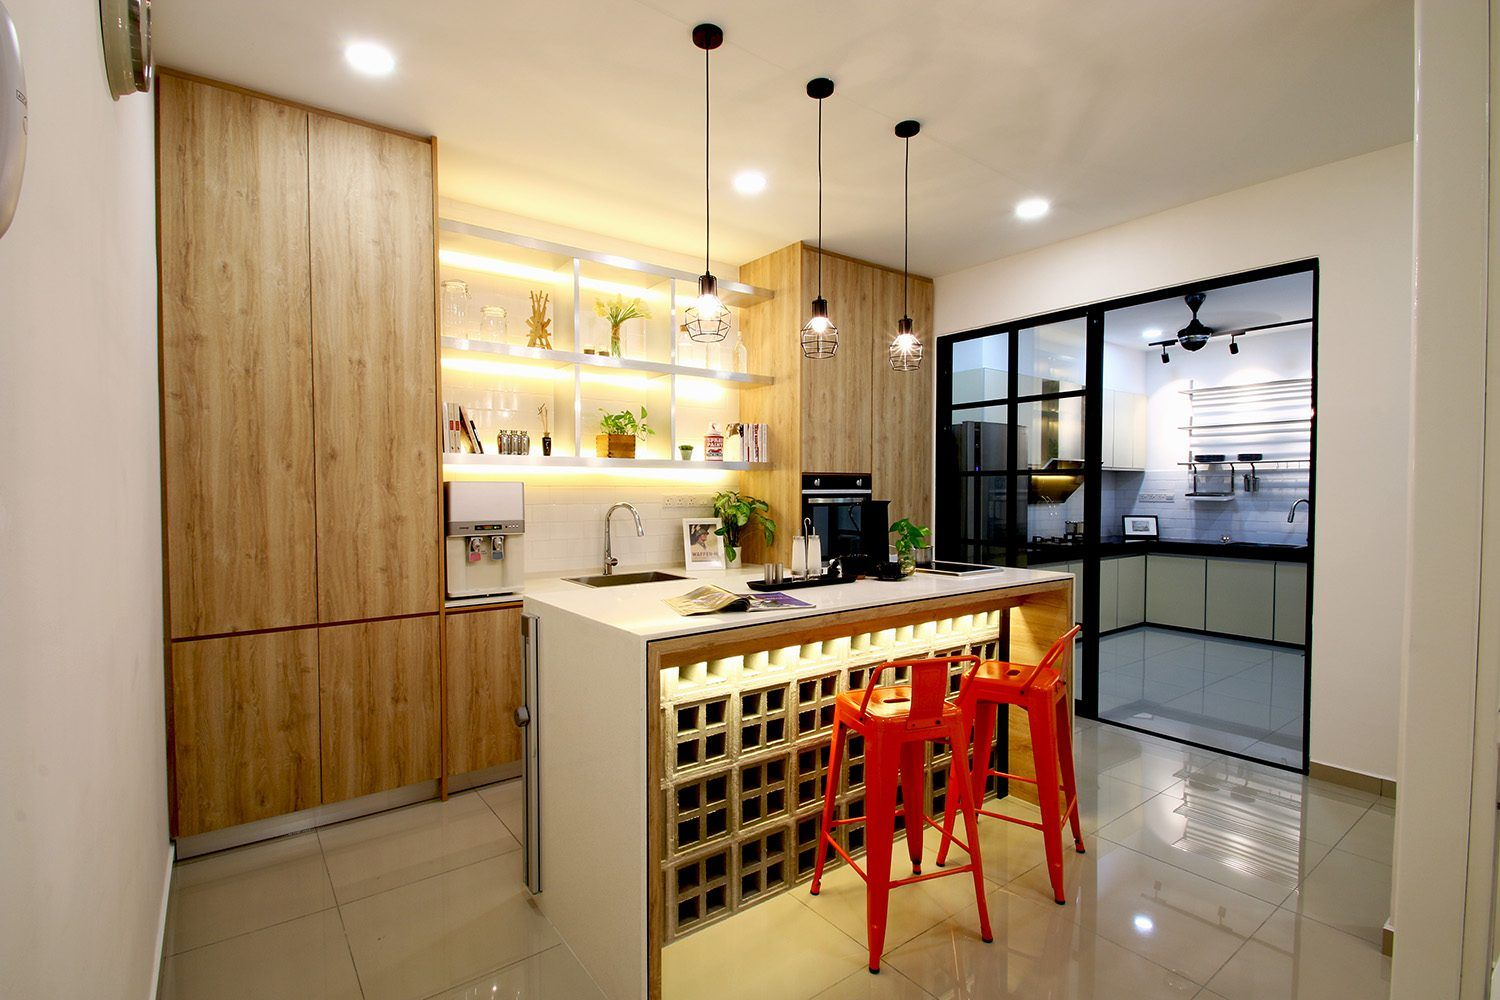 14 wet and dry kitchen design ideas in malaysian homes | inspiration